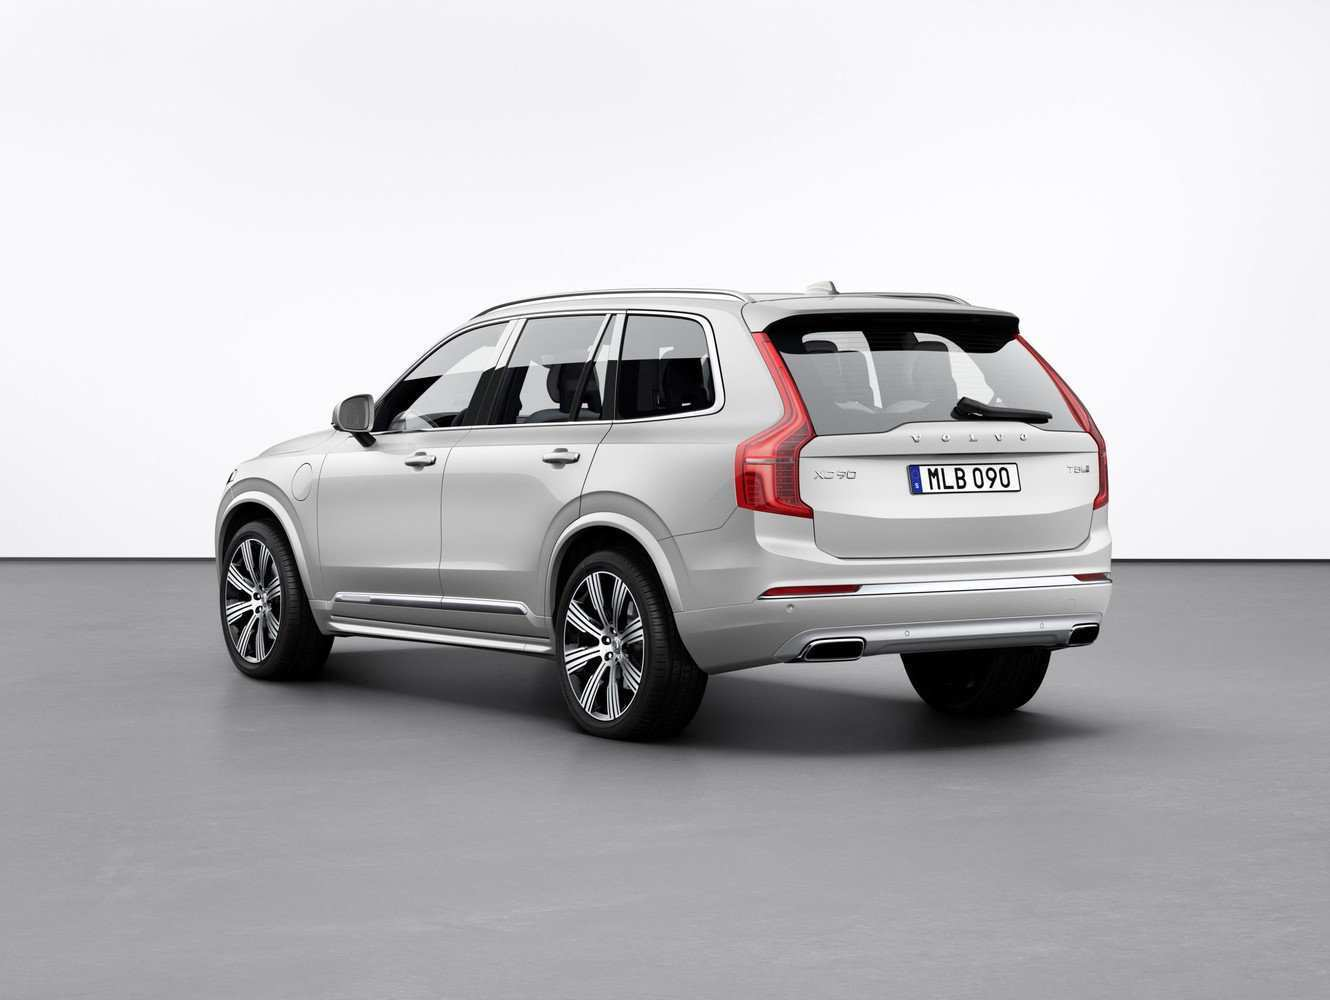 22 The Best Volvo Xc90 Facelift 2019 Release Date